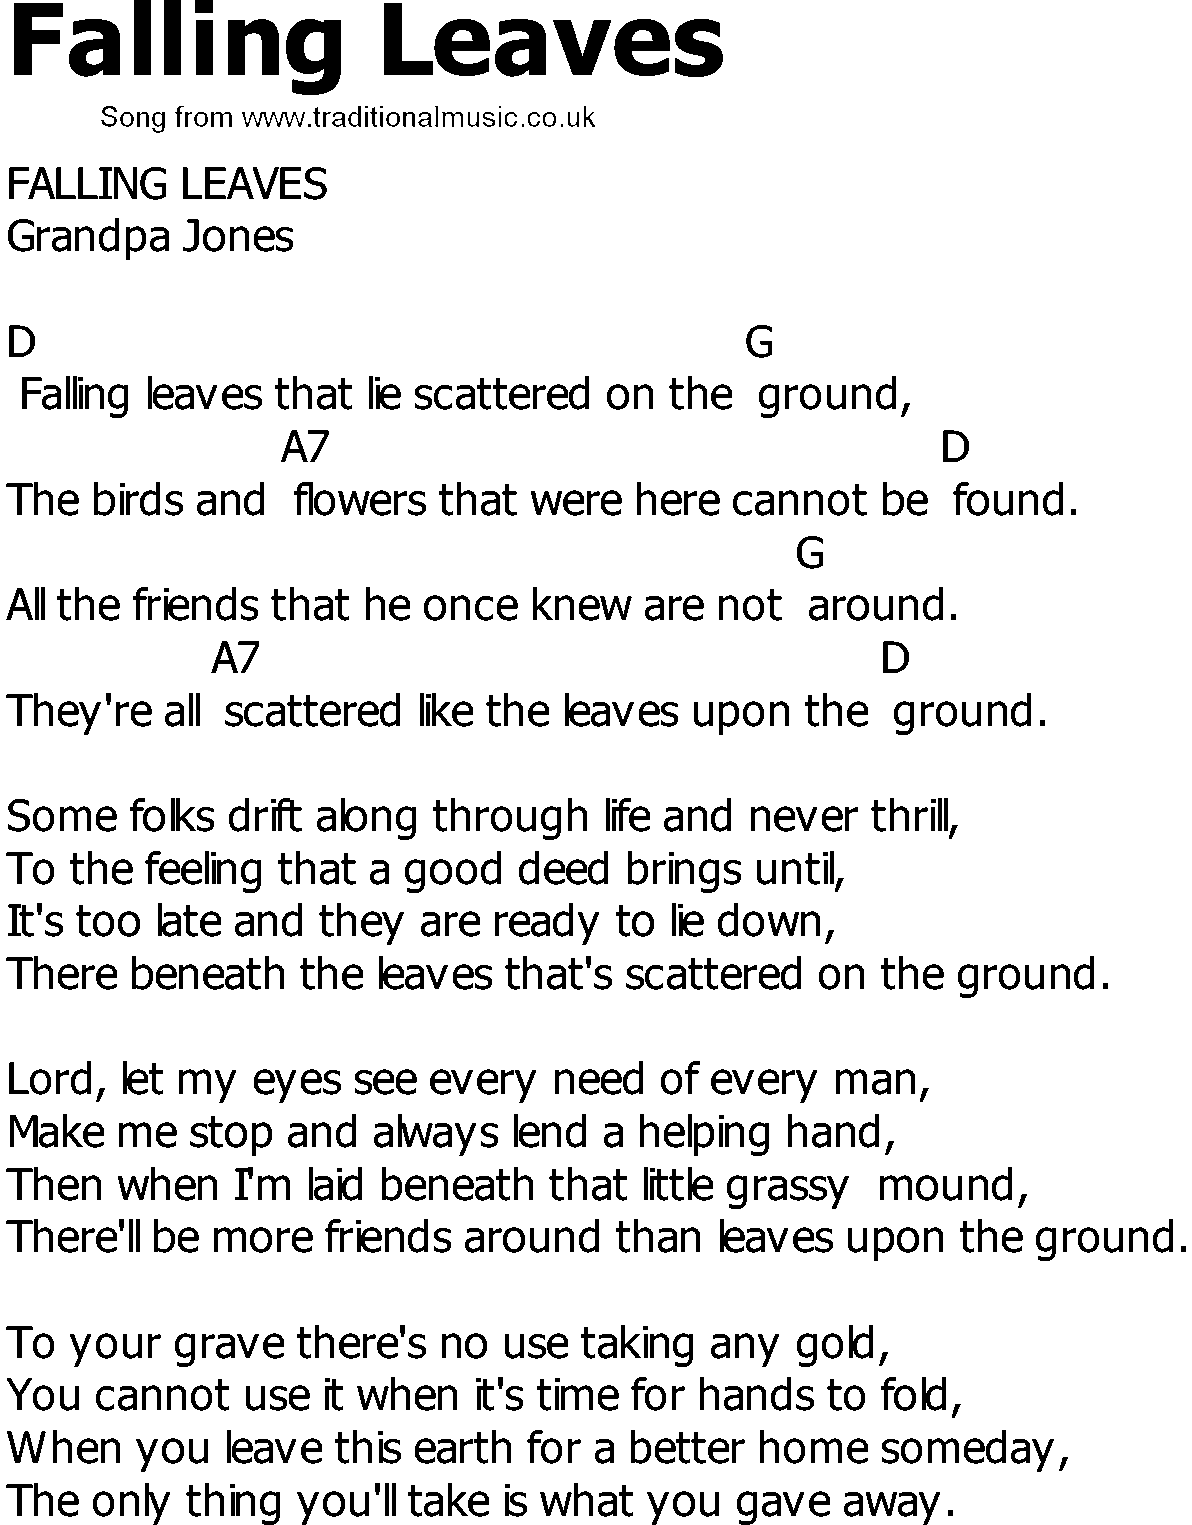 Old Country Song Lyrics With Chords Falling Leaves Bluegrass In